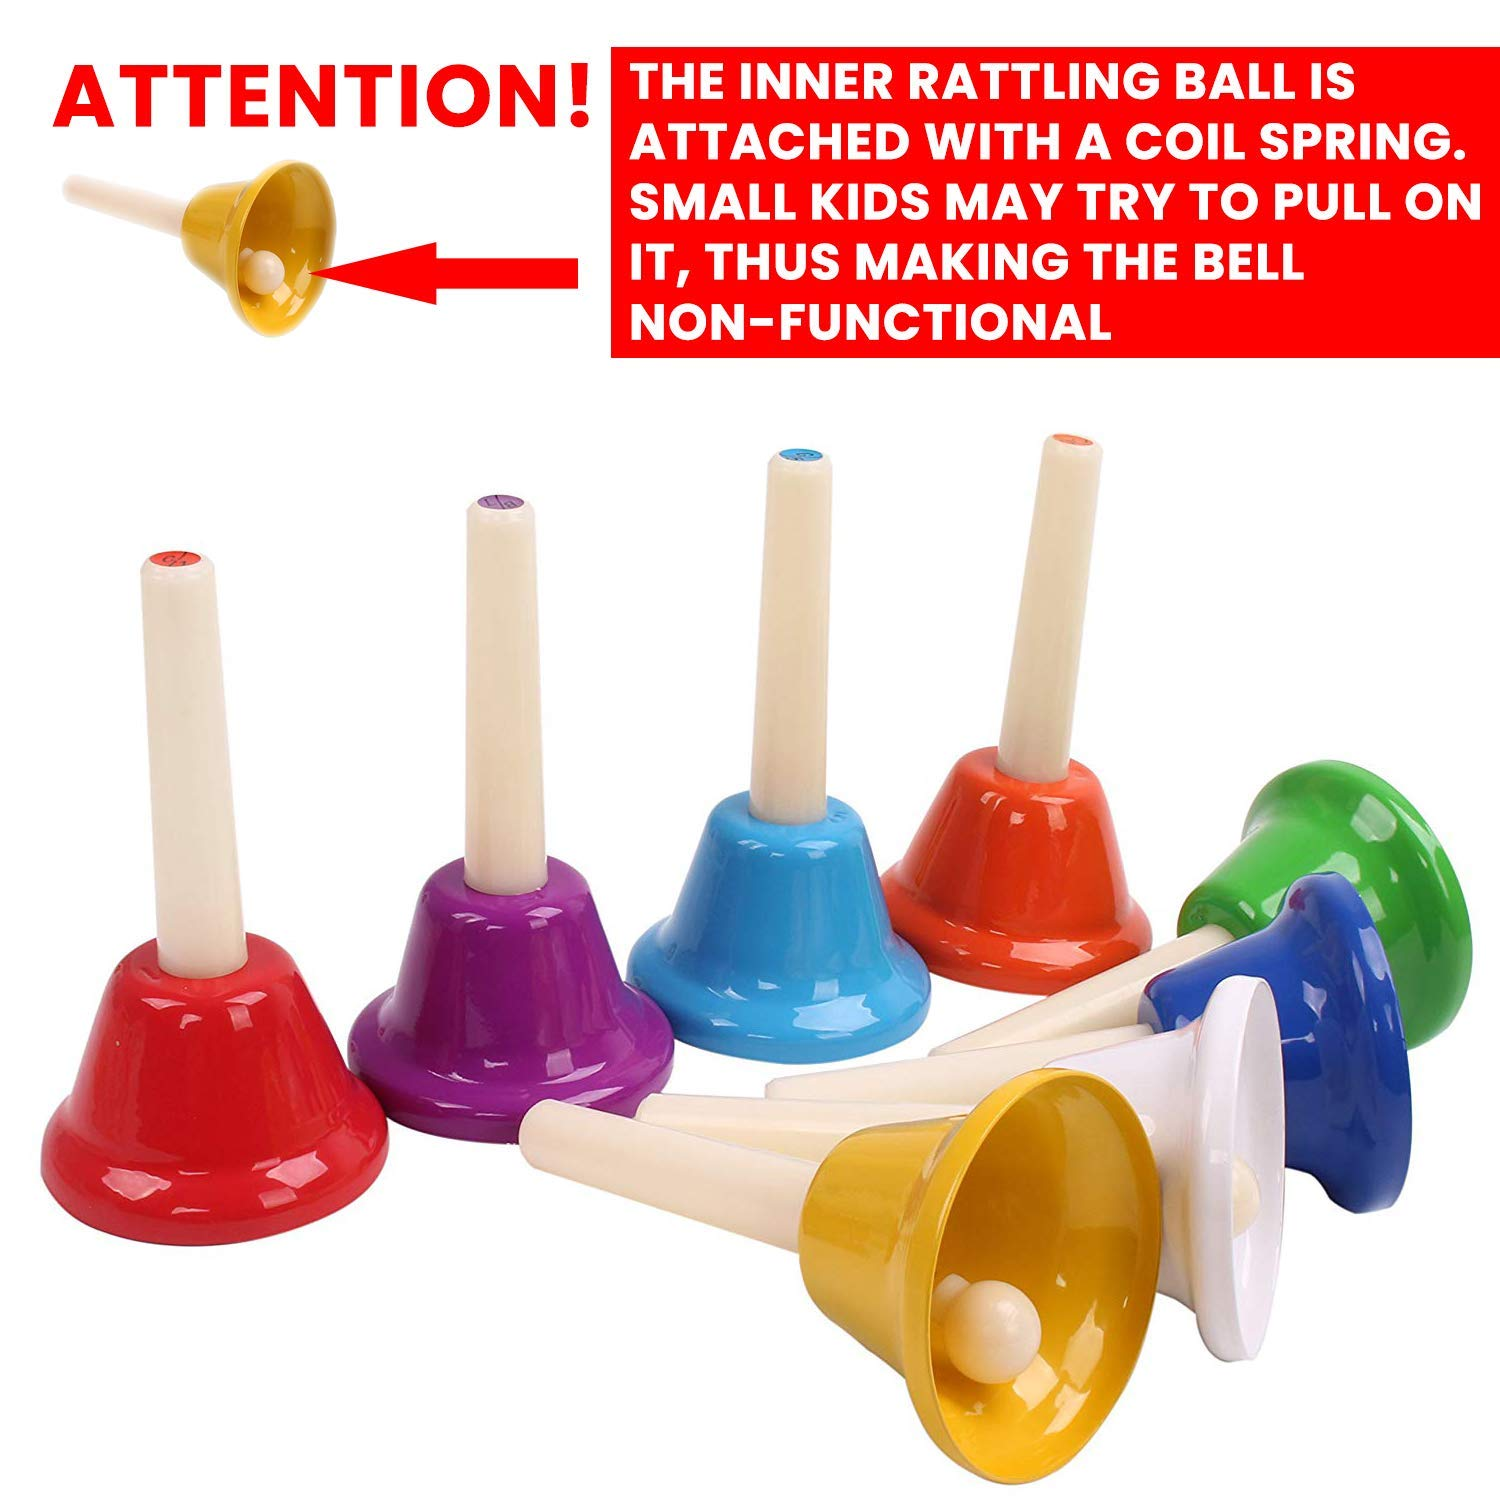 Musical HandBells For Children, Adult, Seniors 8 Note Color-Coded Diatonic Metal Hand Bells Sheet Music Songs included by inTemenos (Image #7)